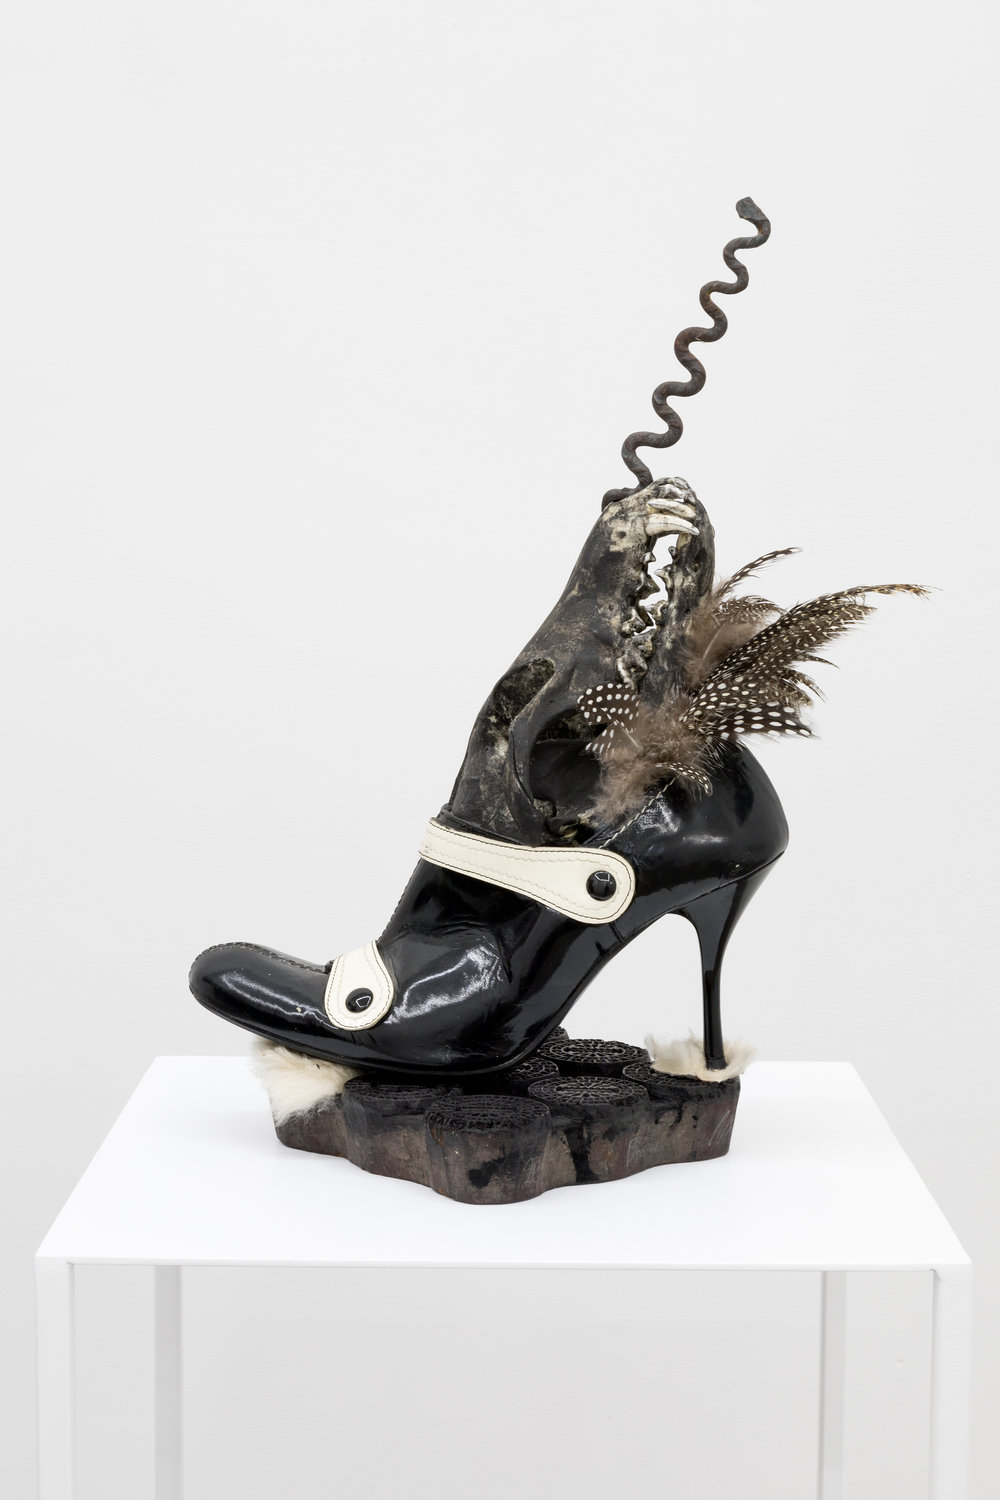 Genesis BREYER P-ORRIDGE,  Shoe Horn #7 , 2015, Horn, dominatrix shoe, Nepalese febric-printing square, skull, feathers, vodun relic, fur, 11 x 9 x 8 in